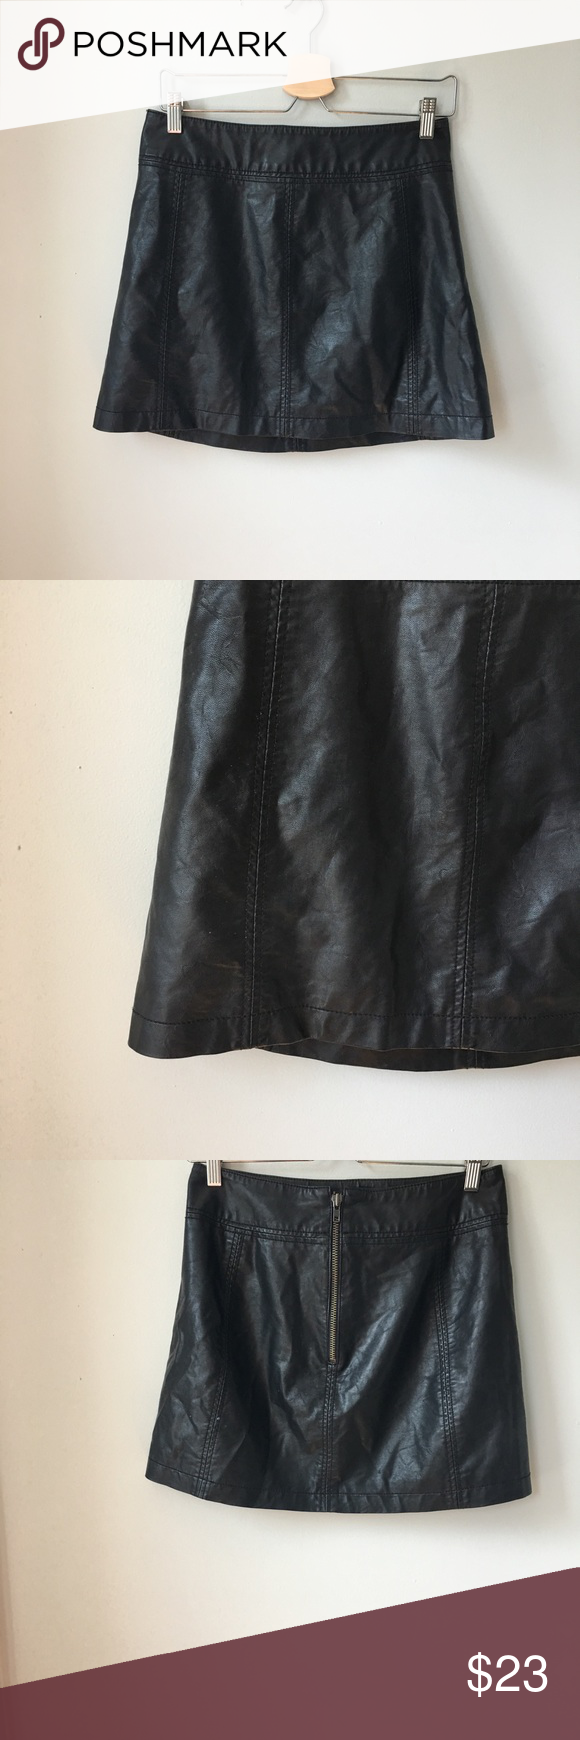 Free People Faux Leather Mini Skirt The quintessential Free People faux leather mini that will always be in season xx badgal Free People Skirts Mini